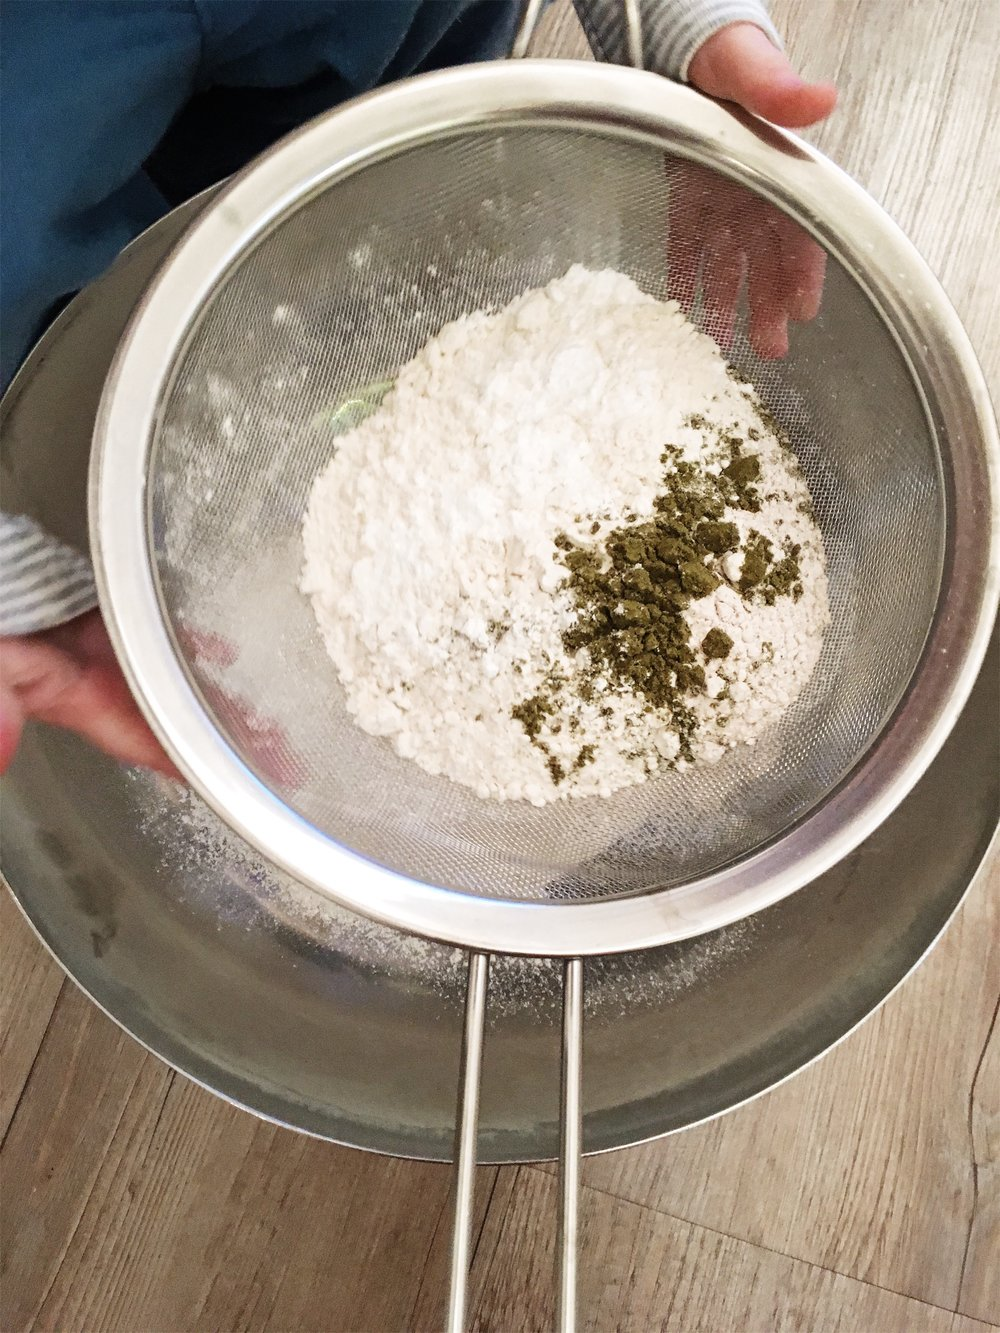 Sifting the dry ingredients